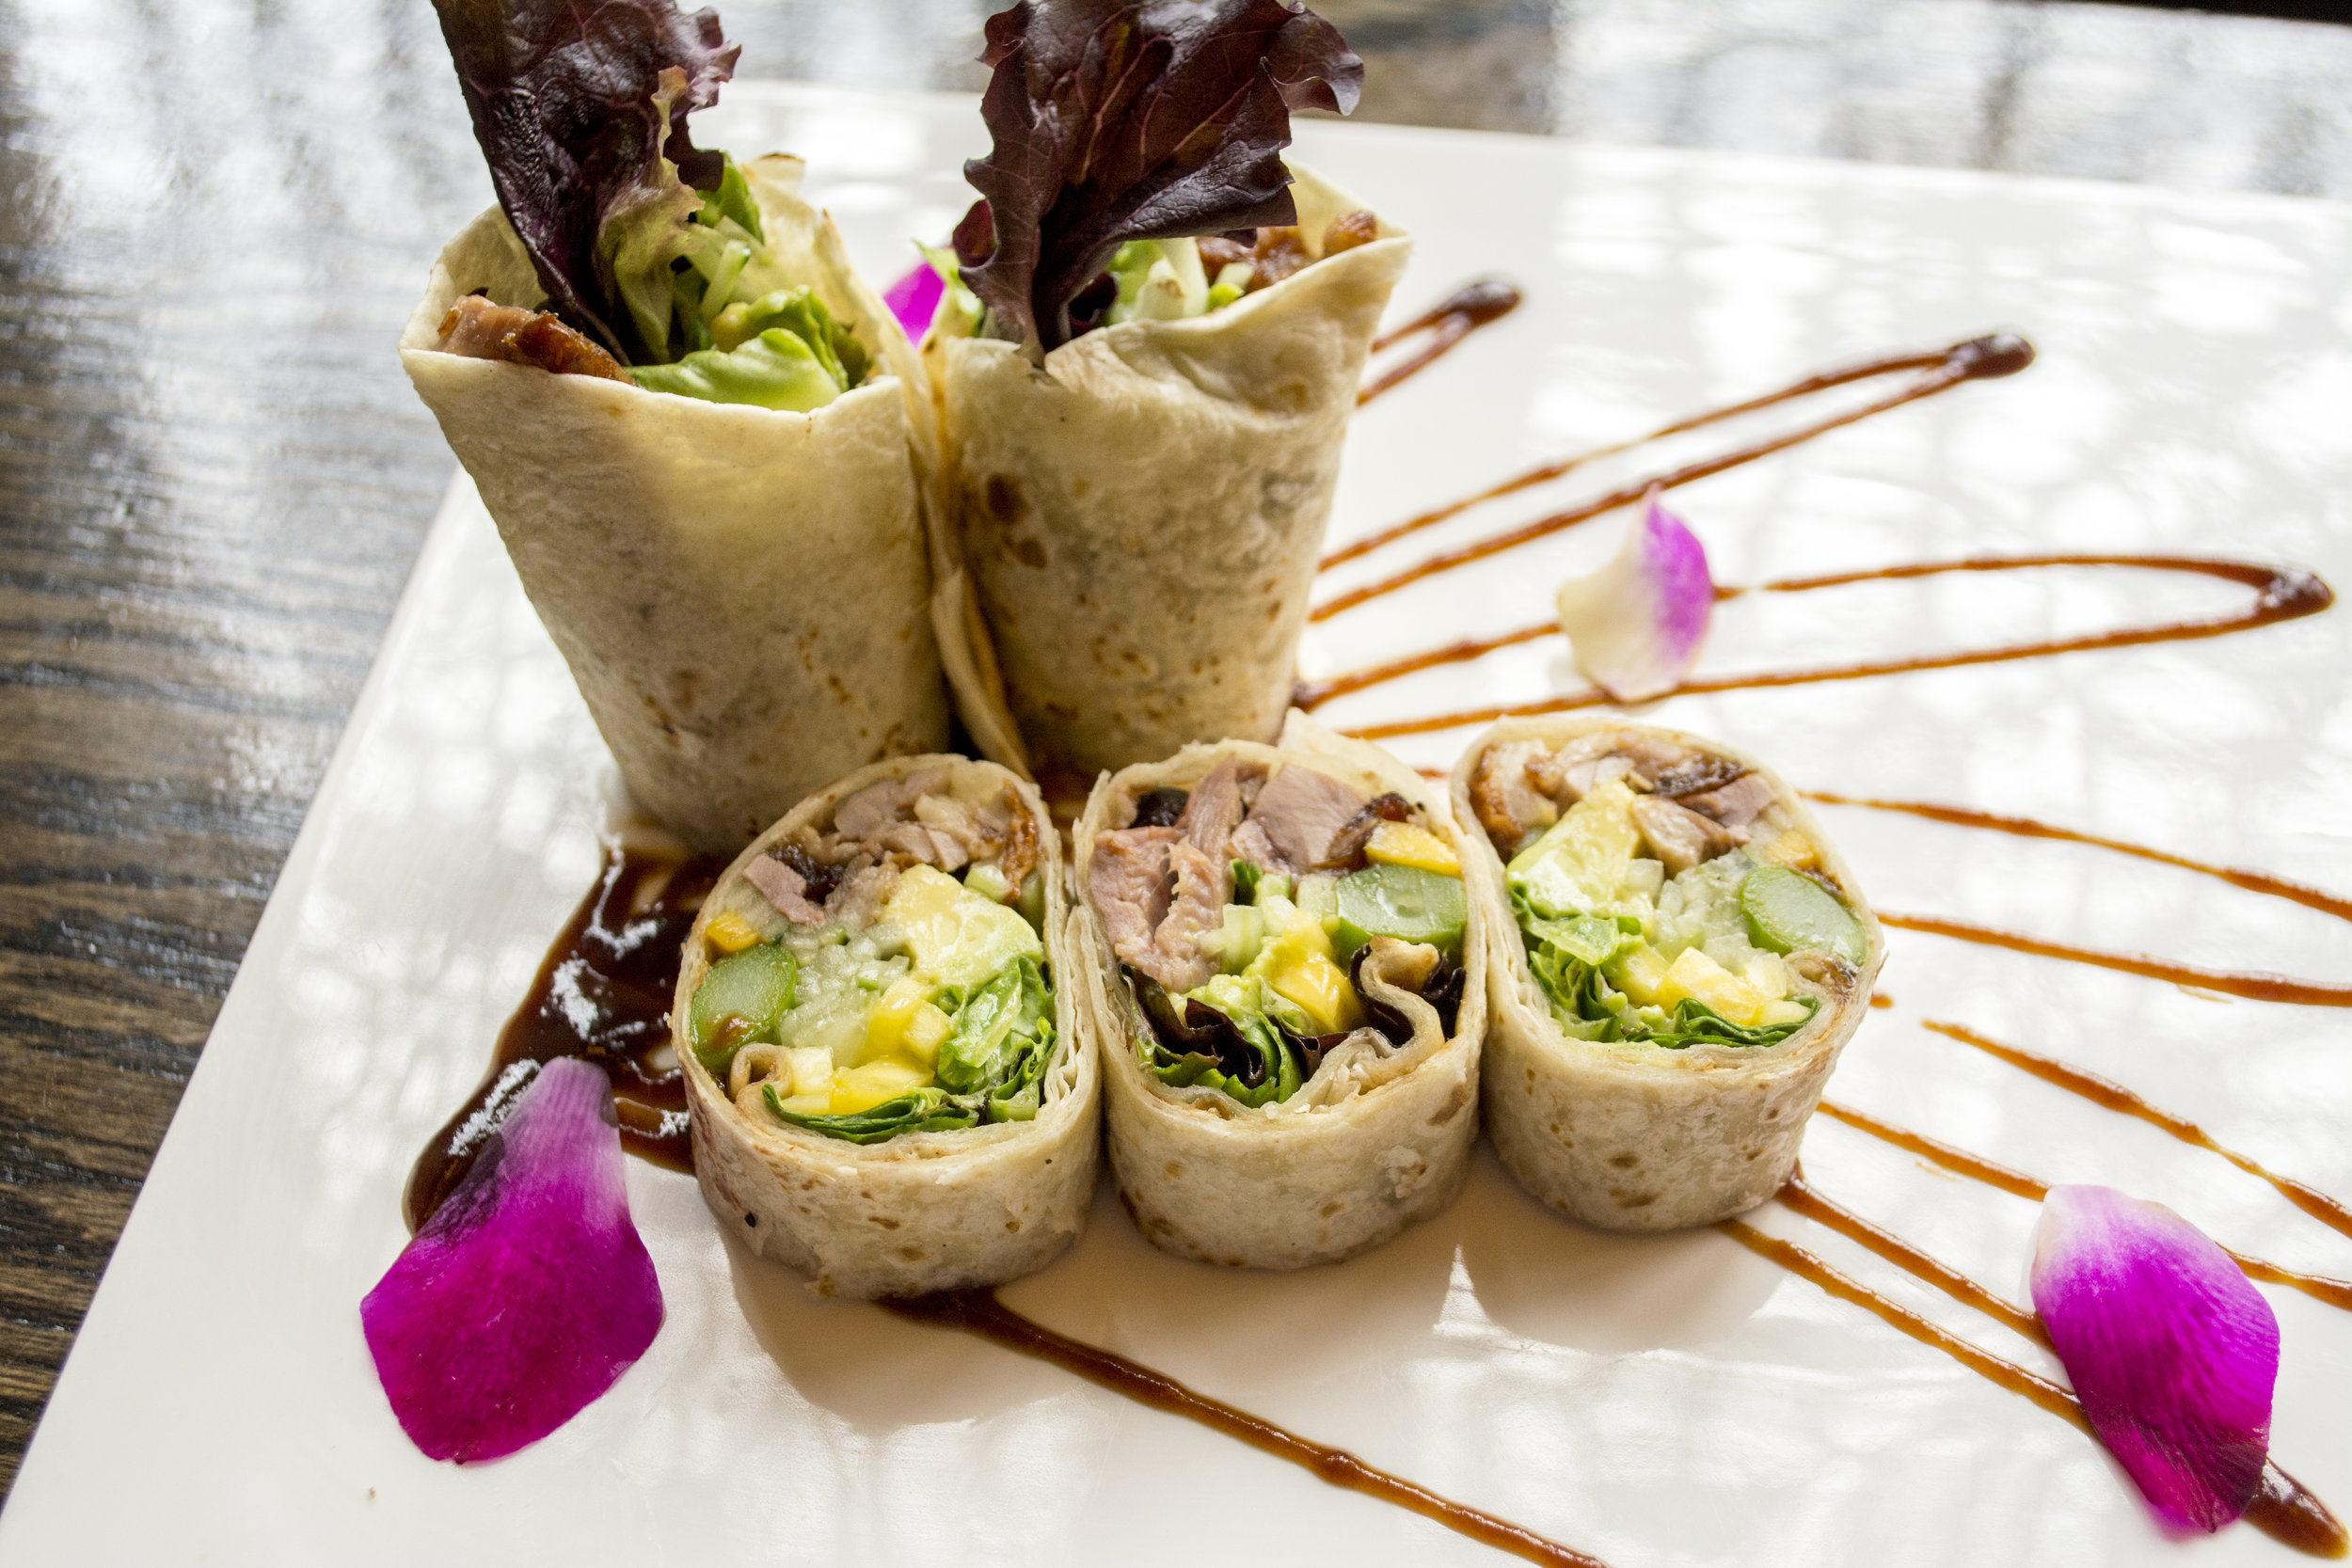 Duck Tacos include duck breast, mixed greens, avocado and cucumber wrapped in a tortilla with a honey mustard and hoisin sauce.